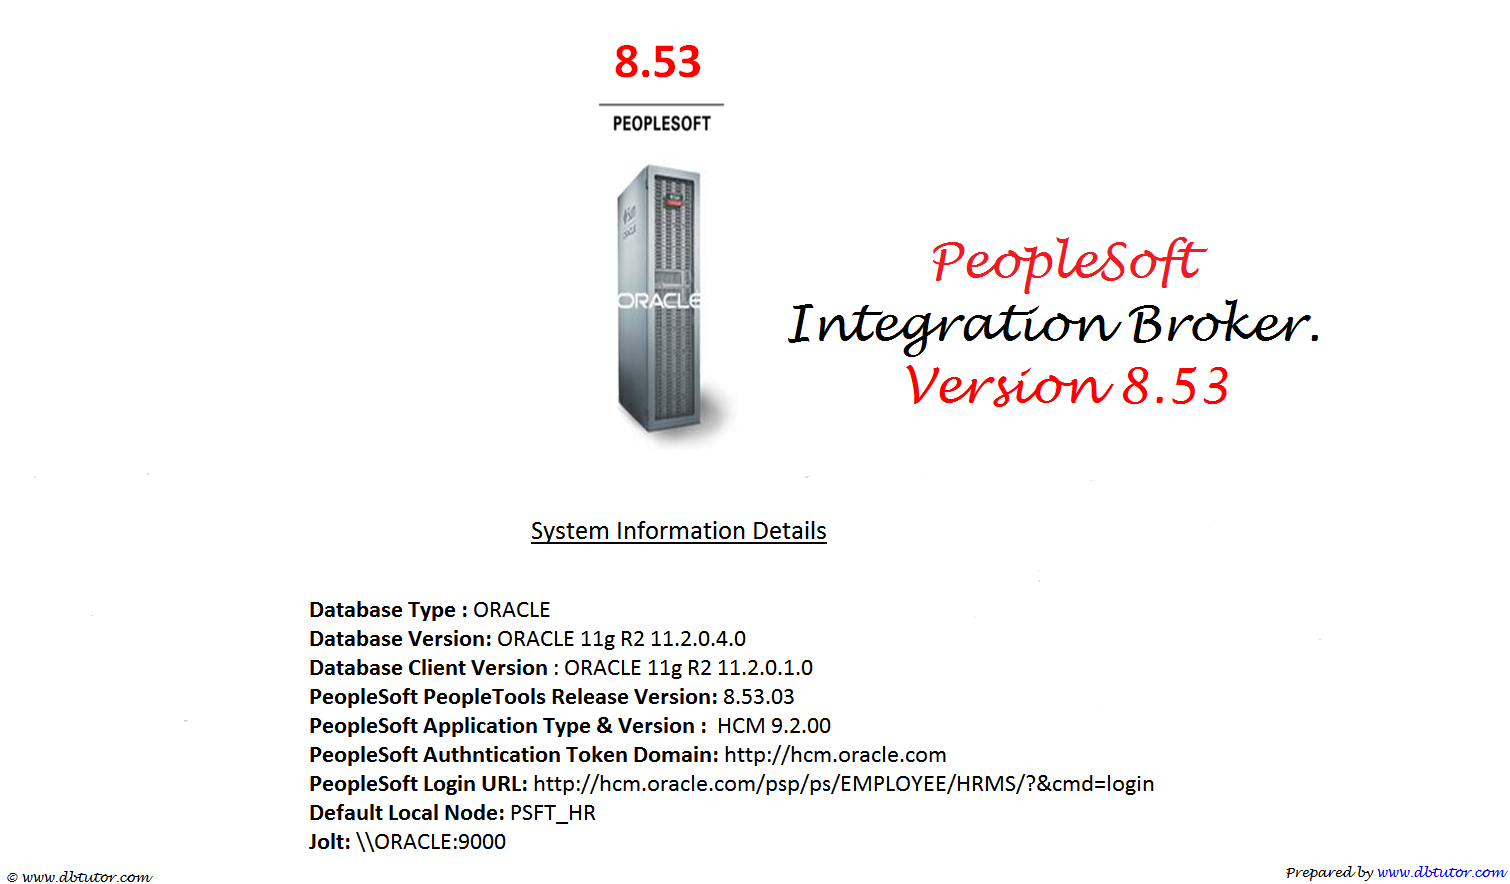 peoplesoft-integration-broker